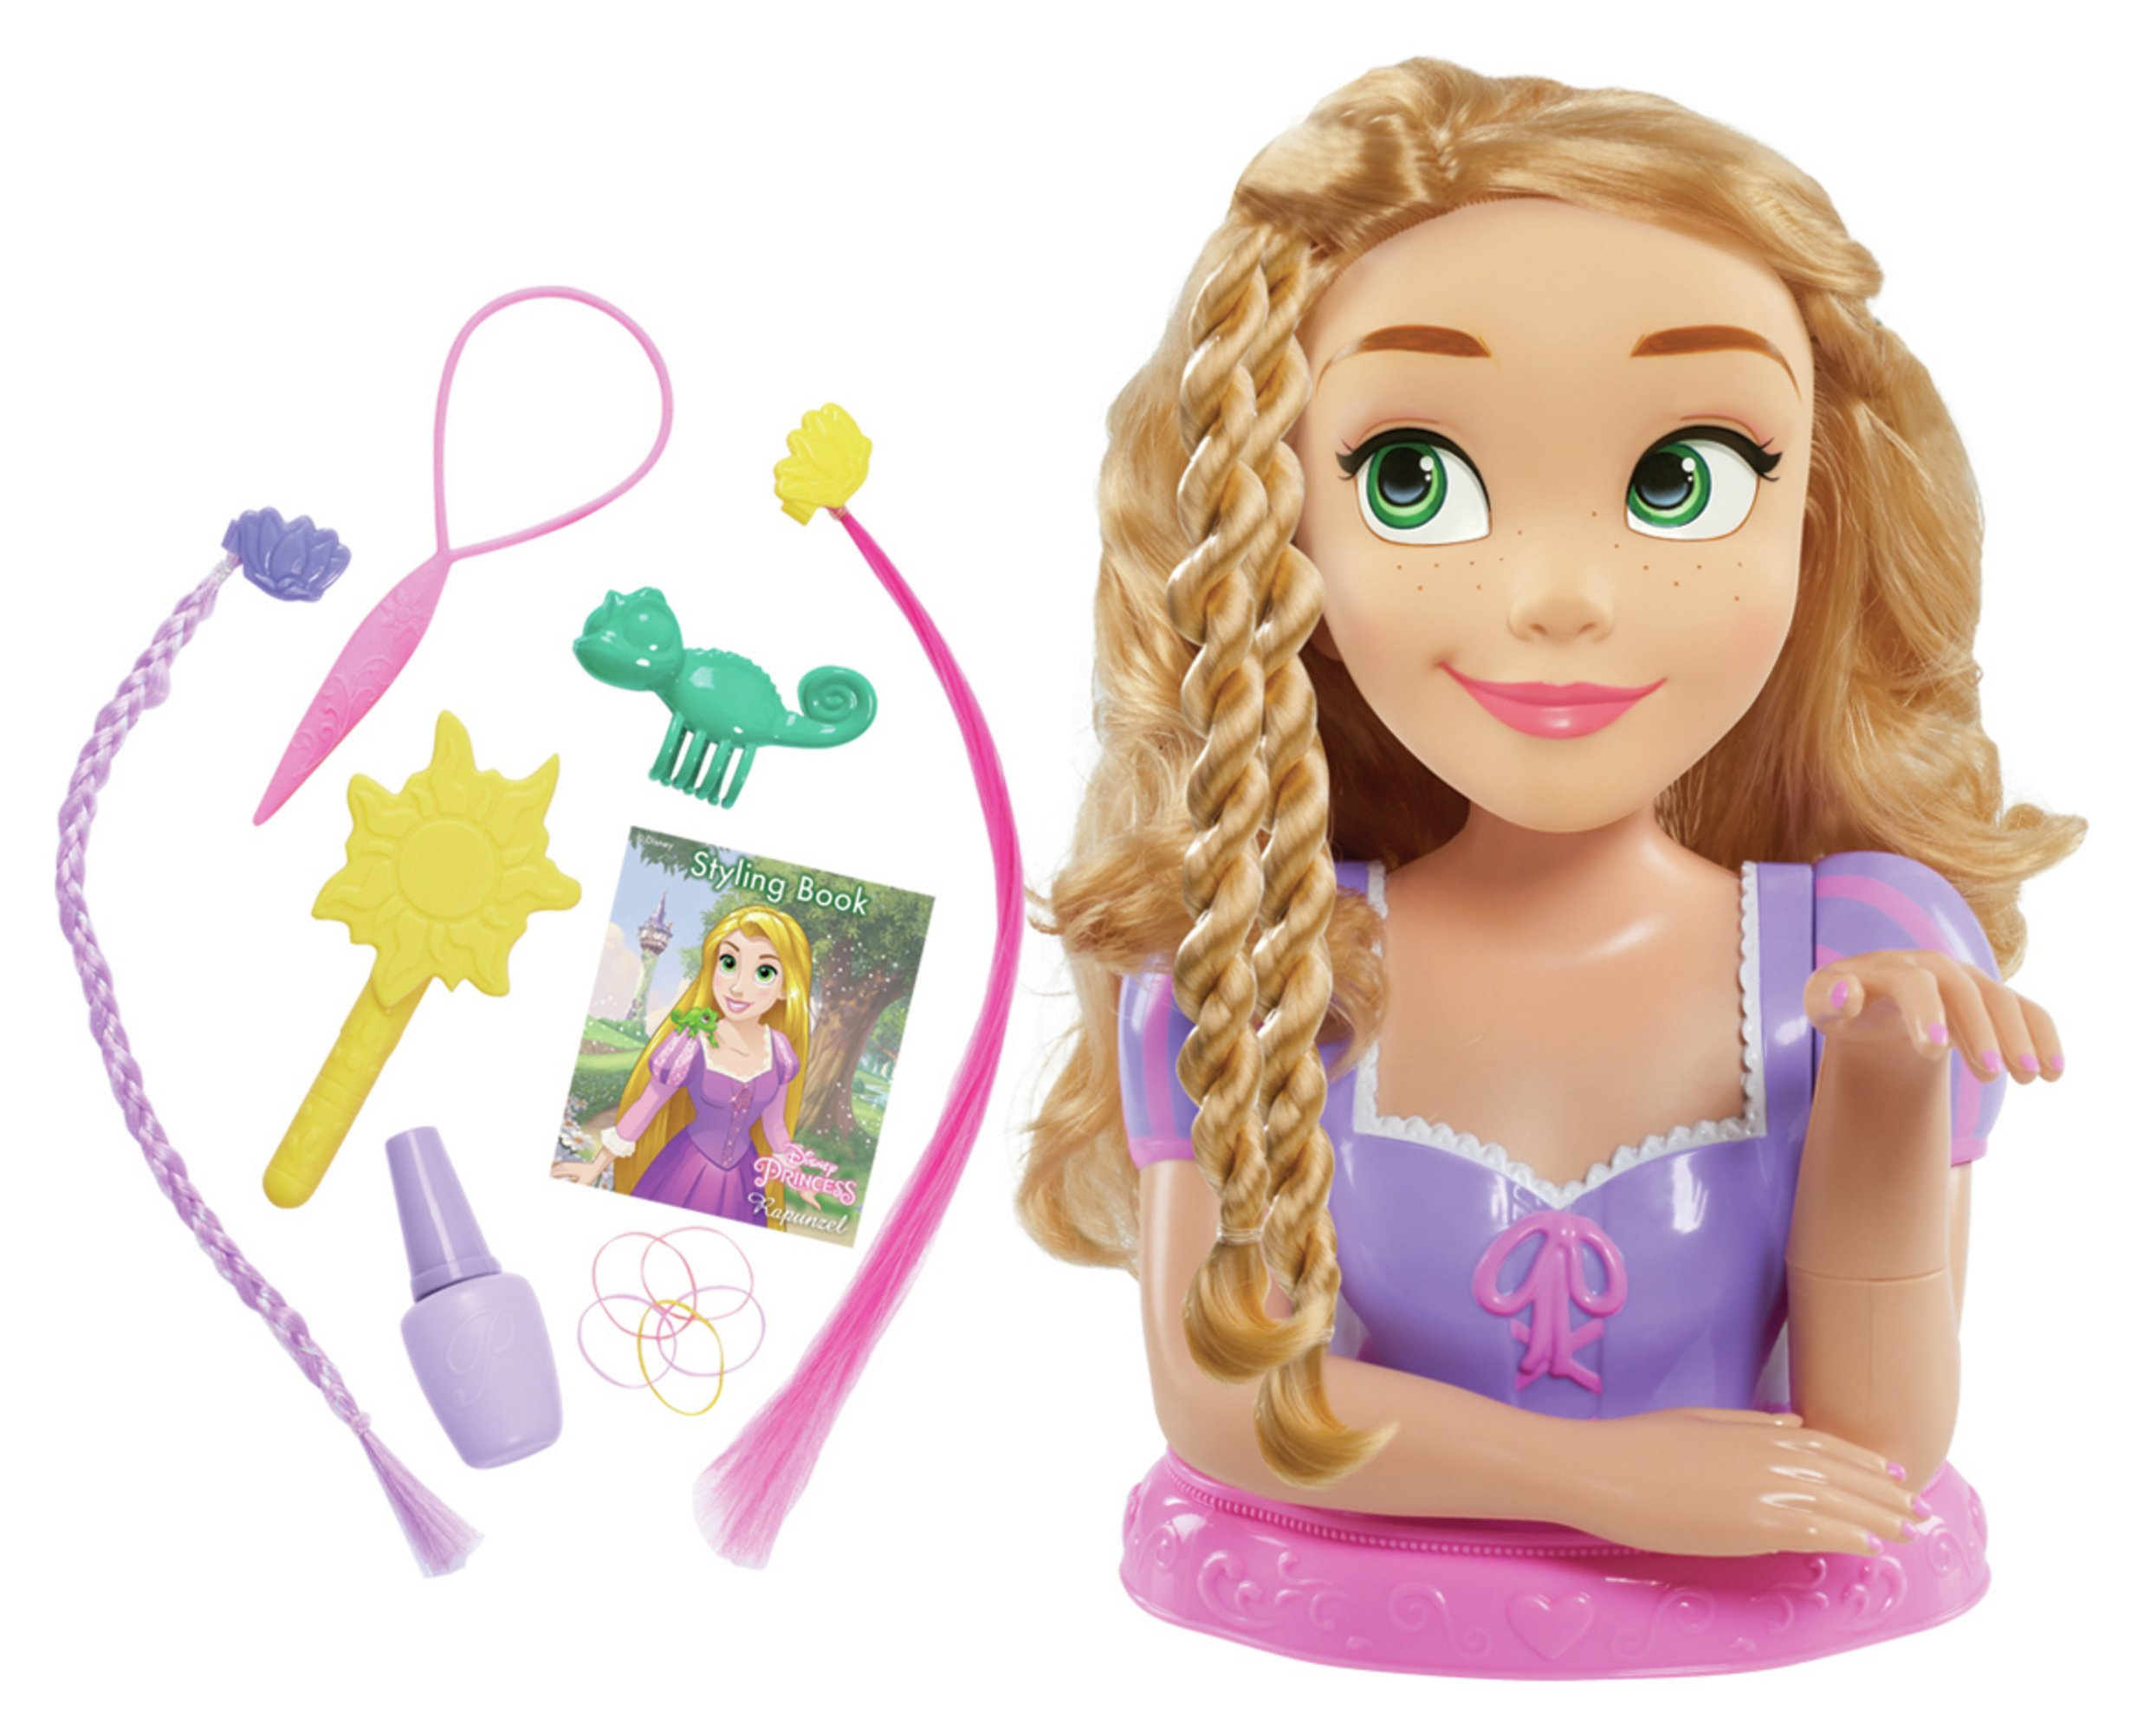 Image of Disney Princess Rapunzel Deluxe Styling Head.